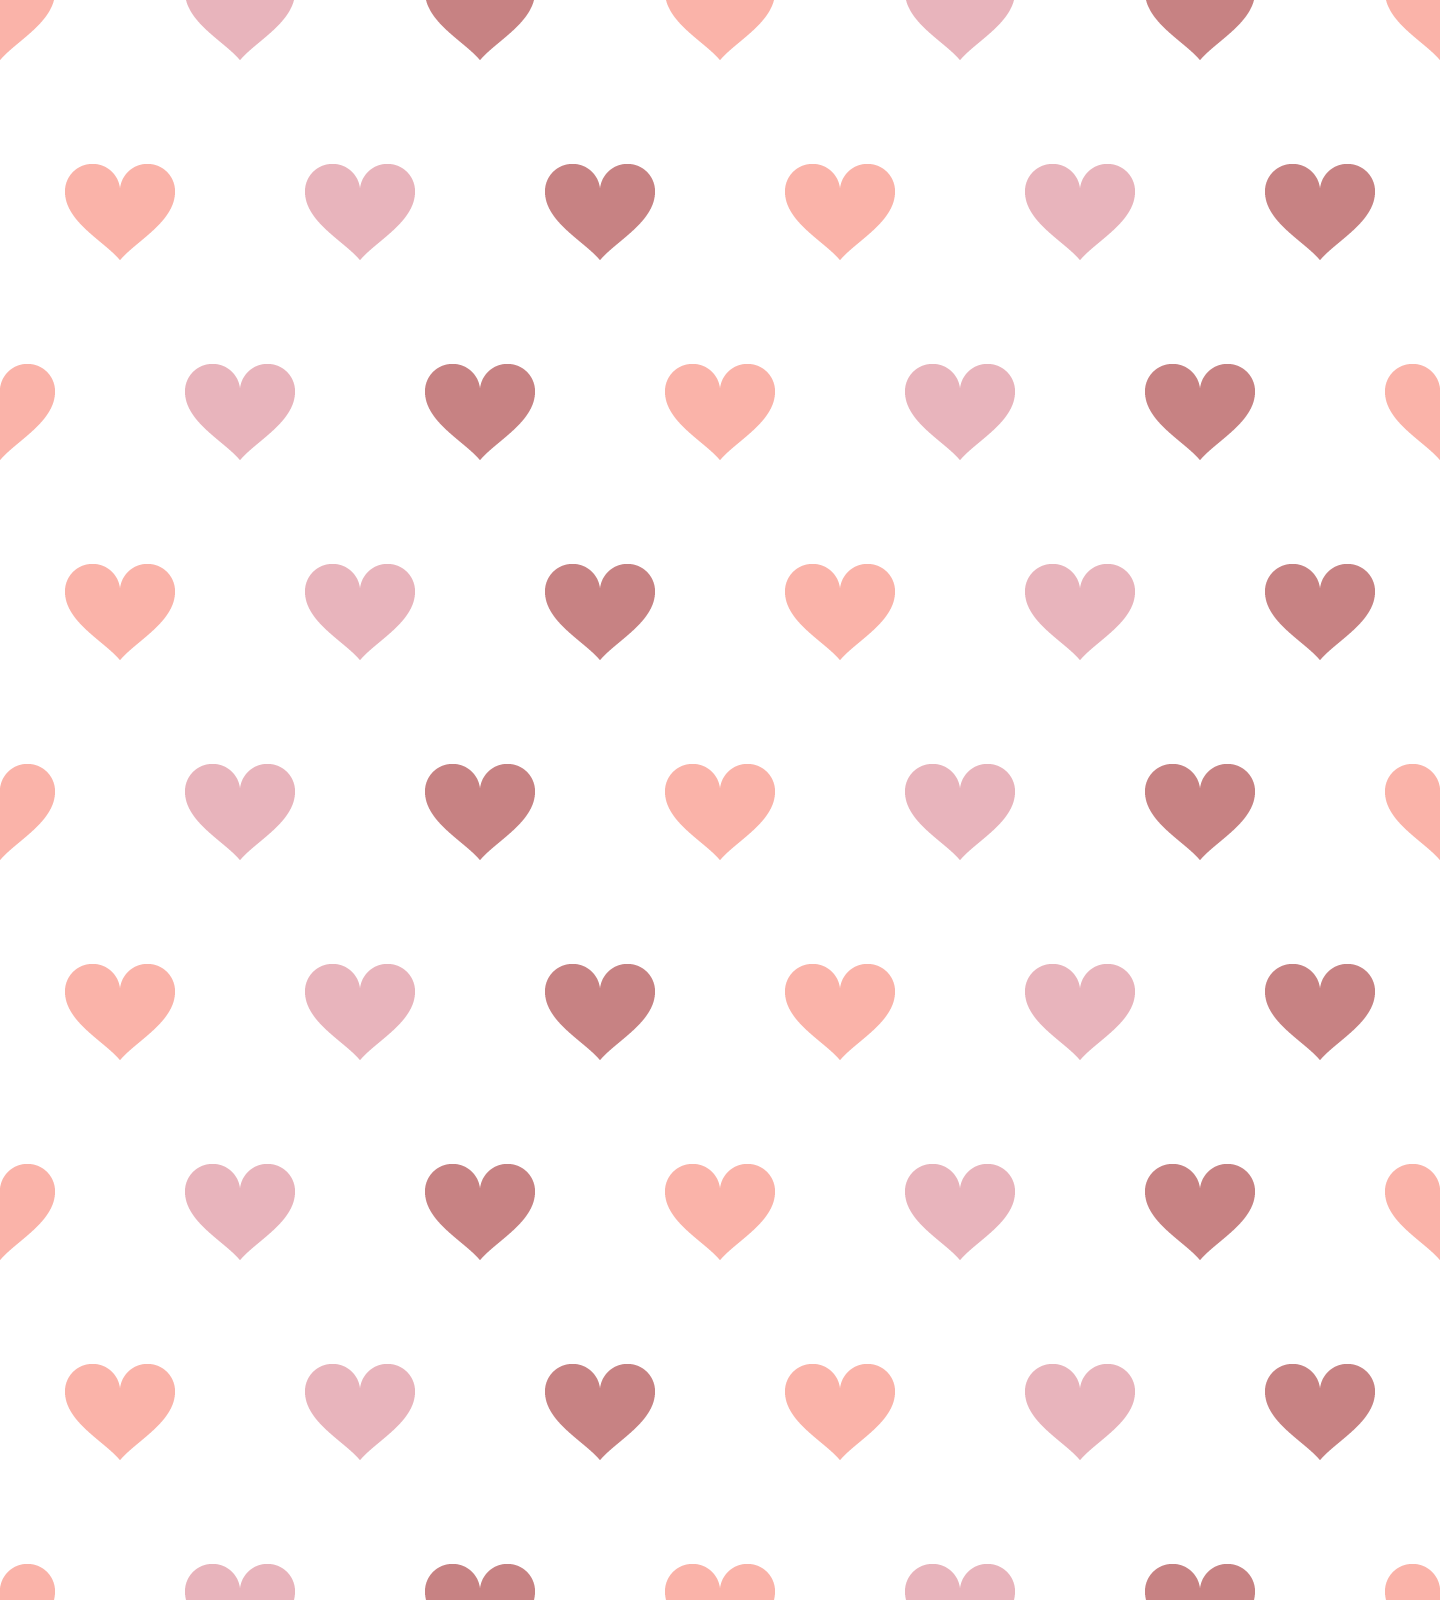 Pink Hearts Vector Pattern On White Background (SVG